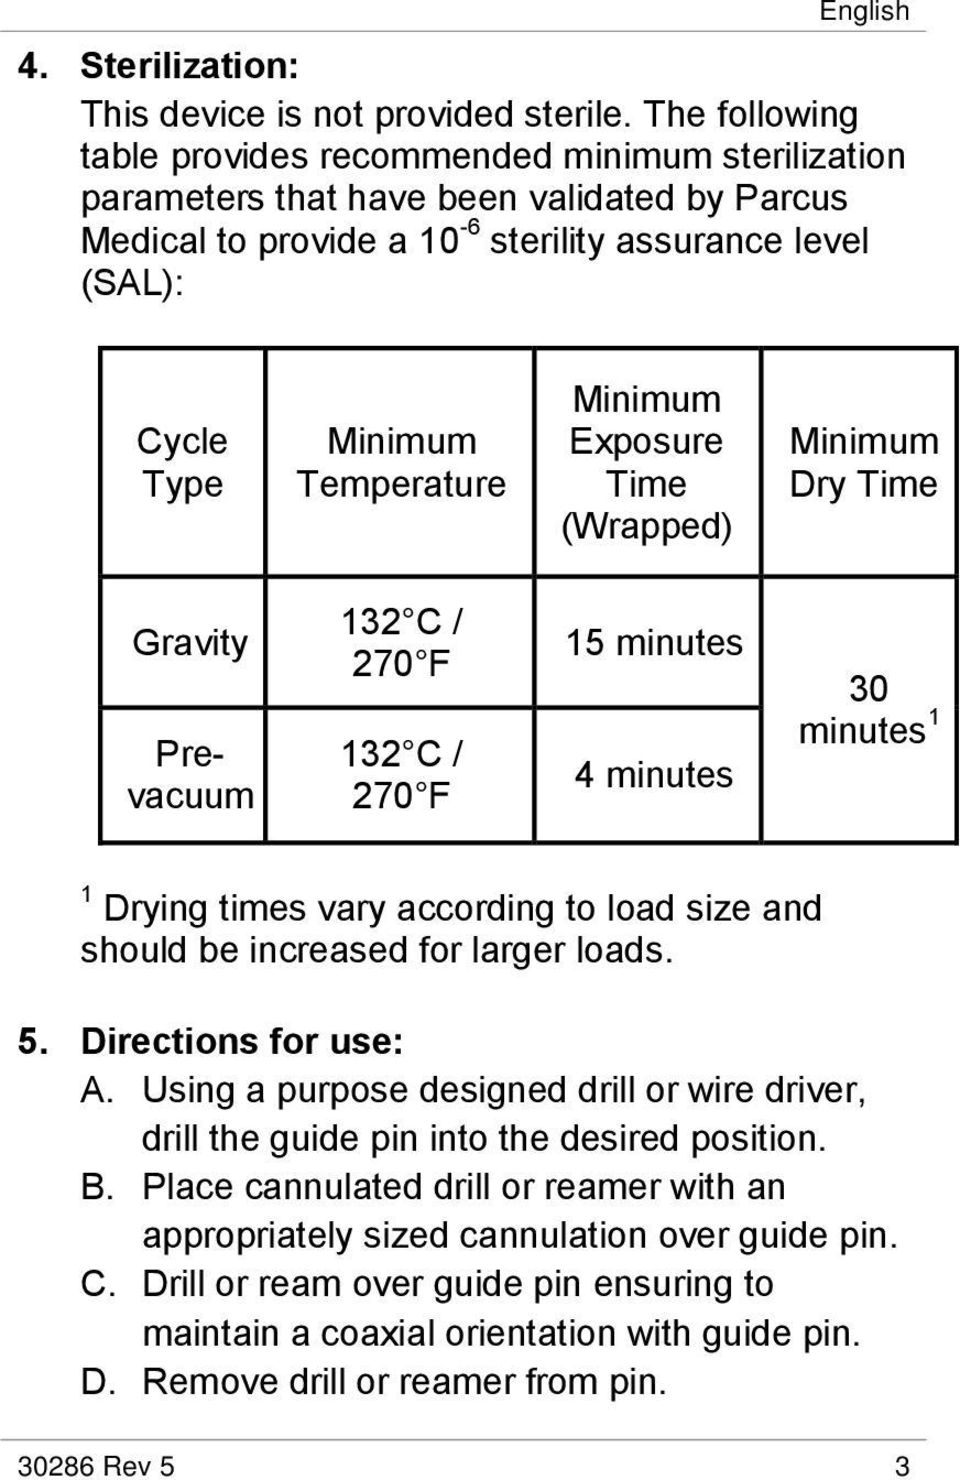 Minimum Exposure Time (Wrapped) Minimum Dry Time Gravity Prevacuum 132 C / 270 F 132 C / 270 F 15 minutes 4 minutes 30 minutes 1 1 Drying times vary according to load size and should be increased for